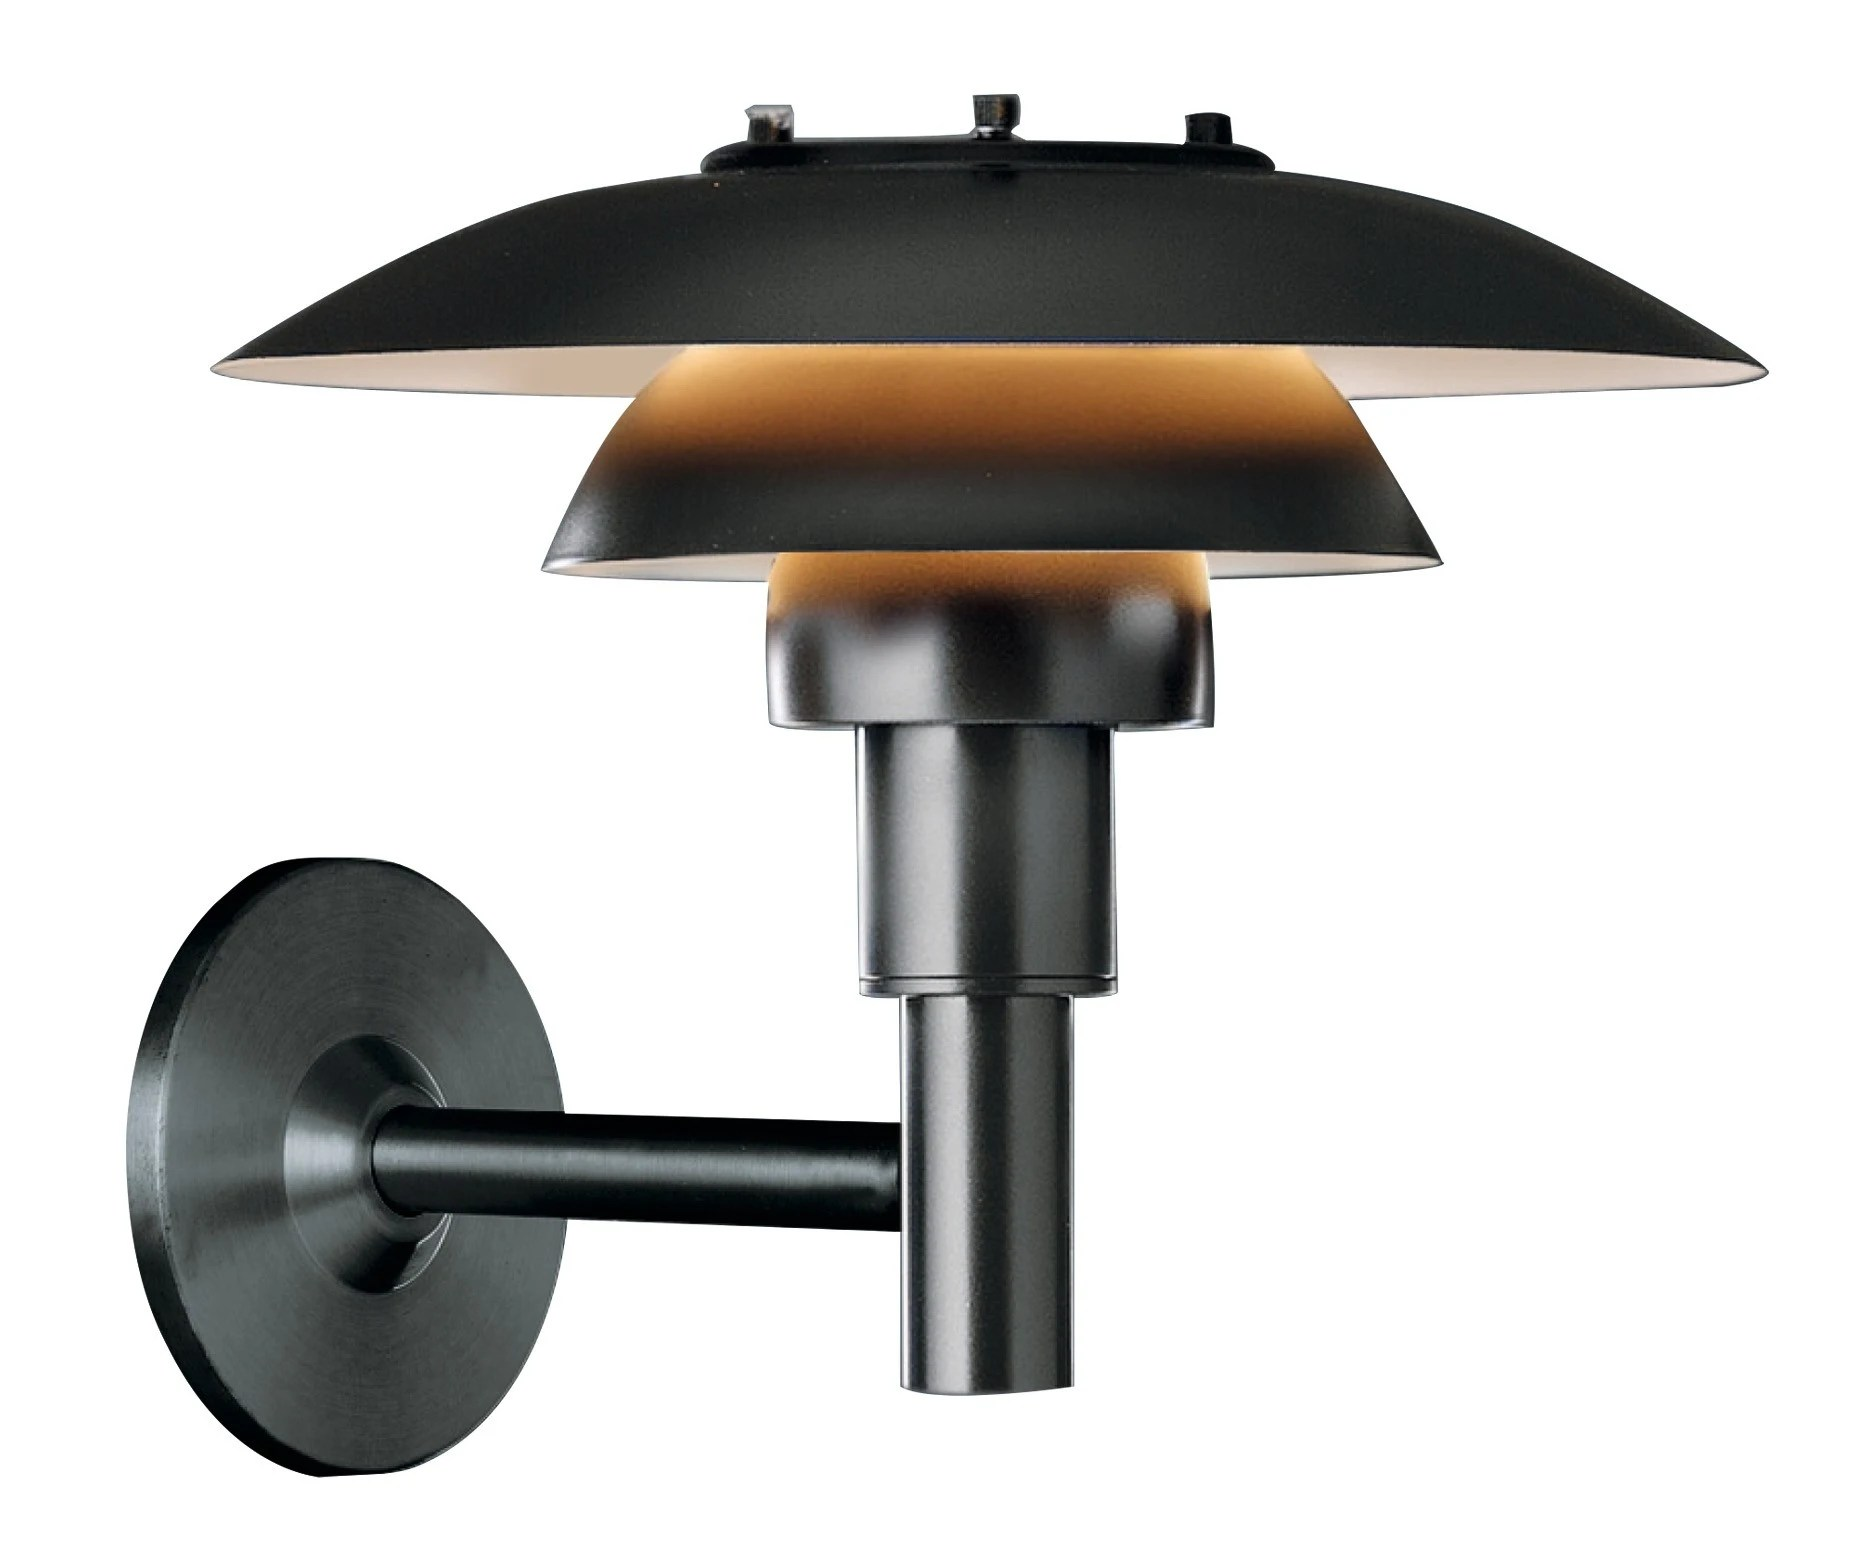 Louis Poulsen Ph 3 2 Louis Poulsen Ph 3 2½ Outdoor Wall Lamp